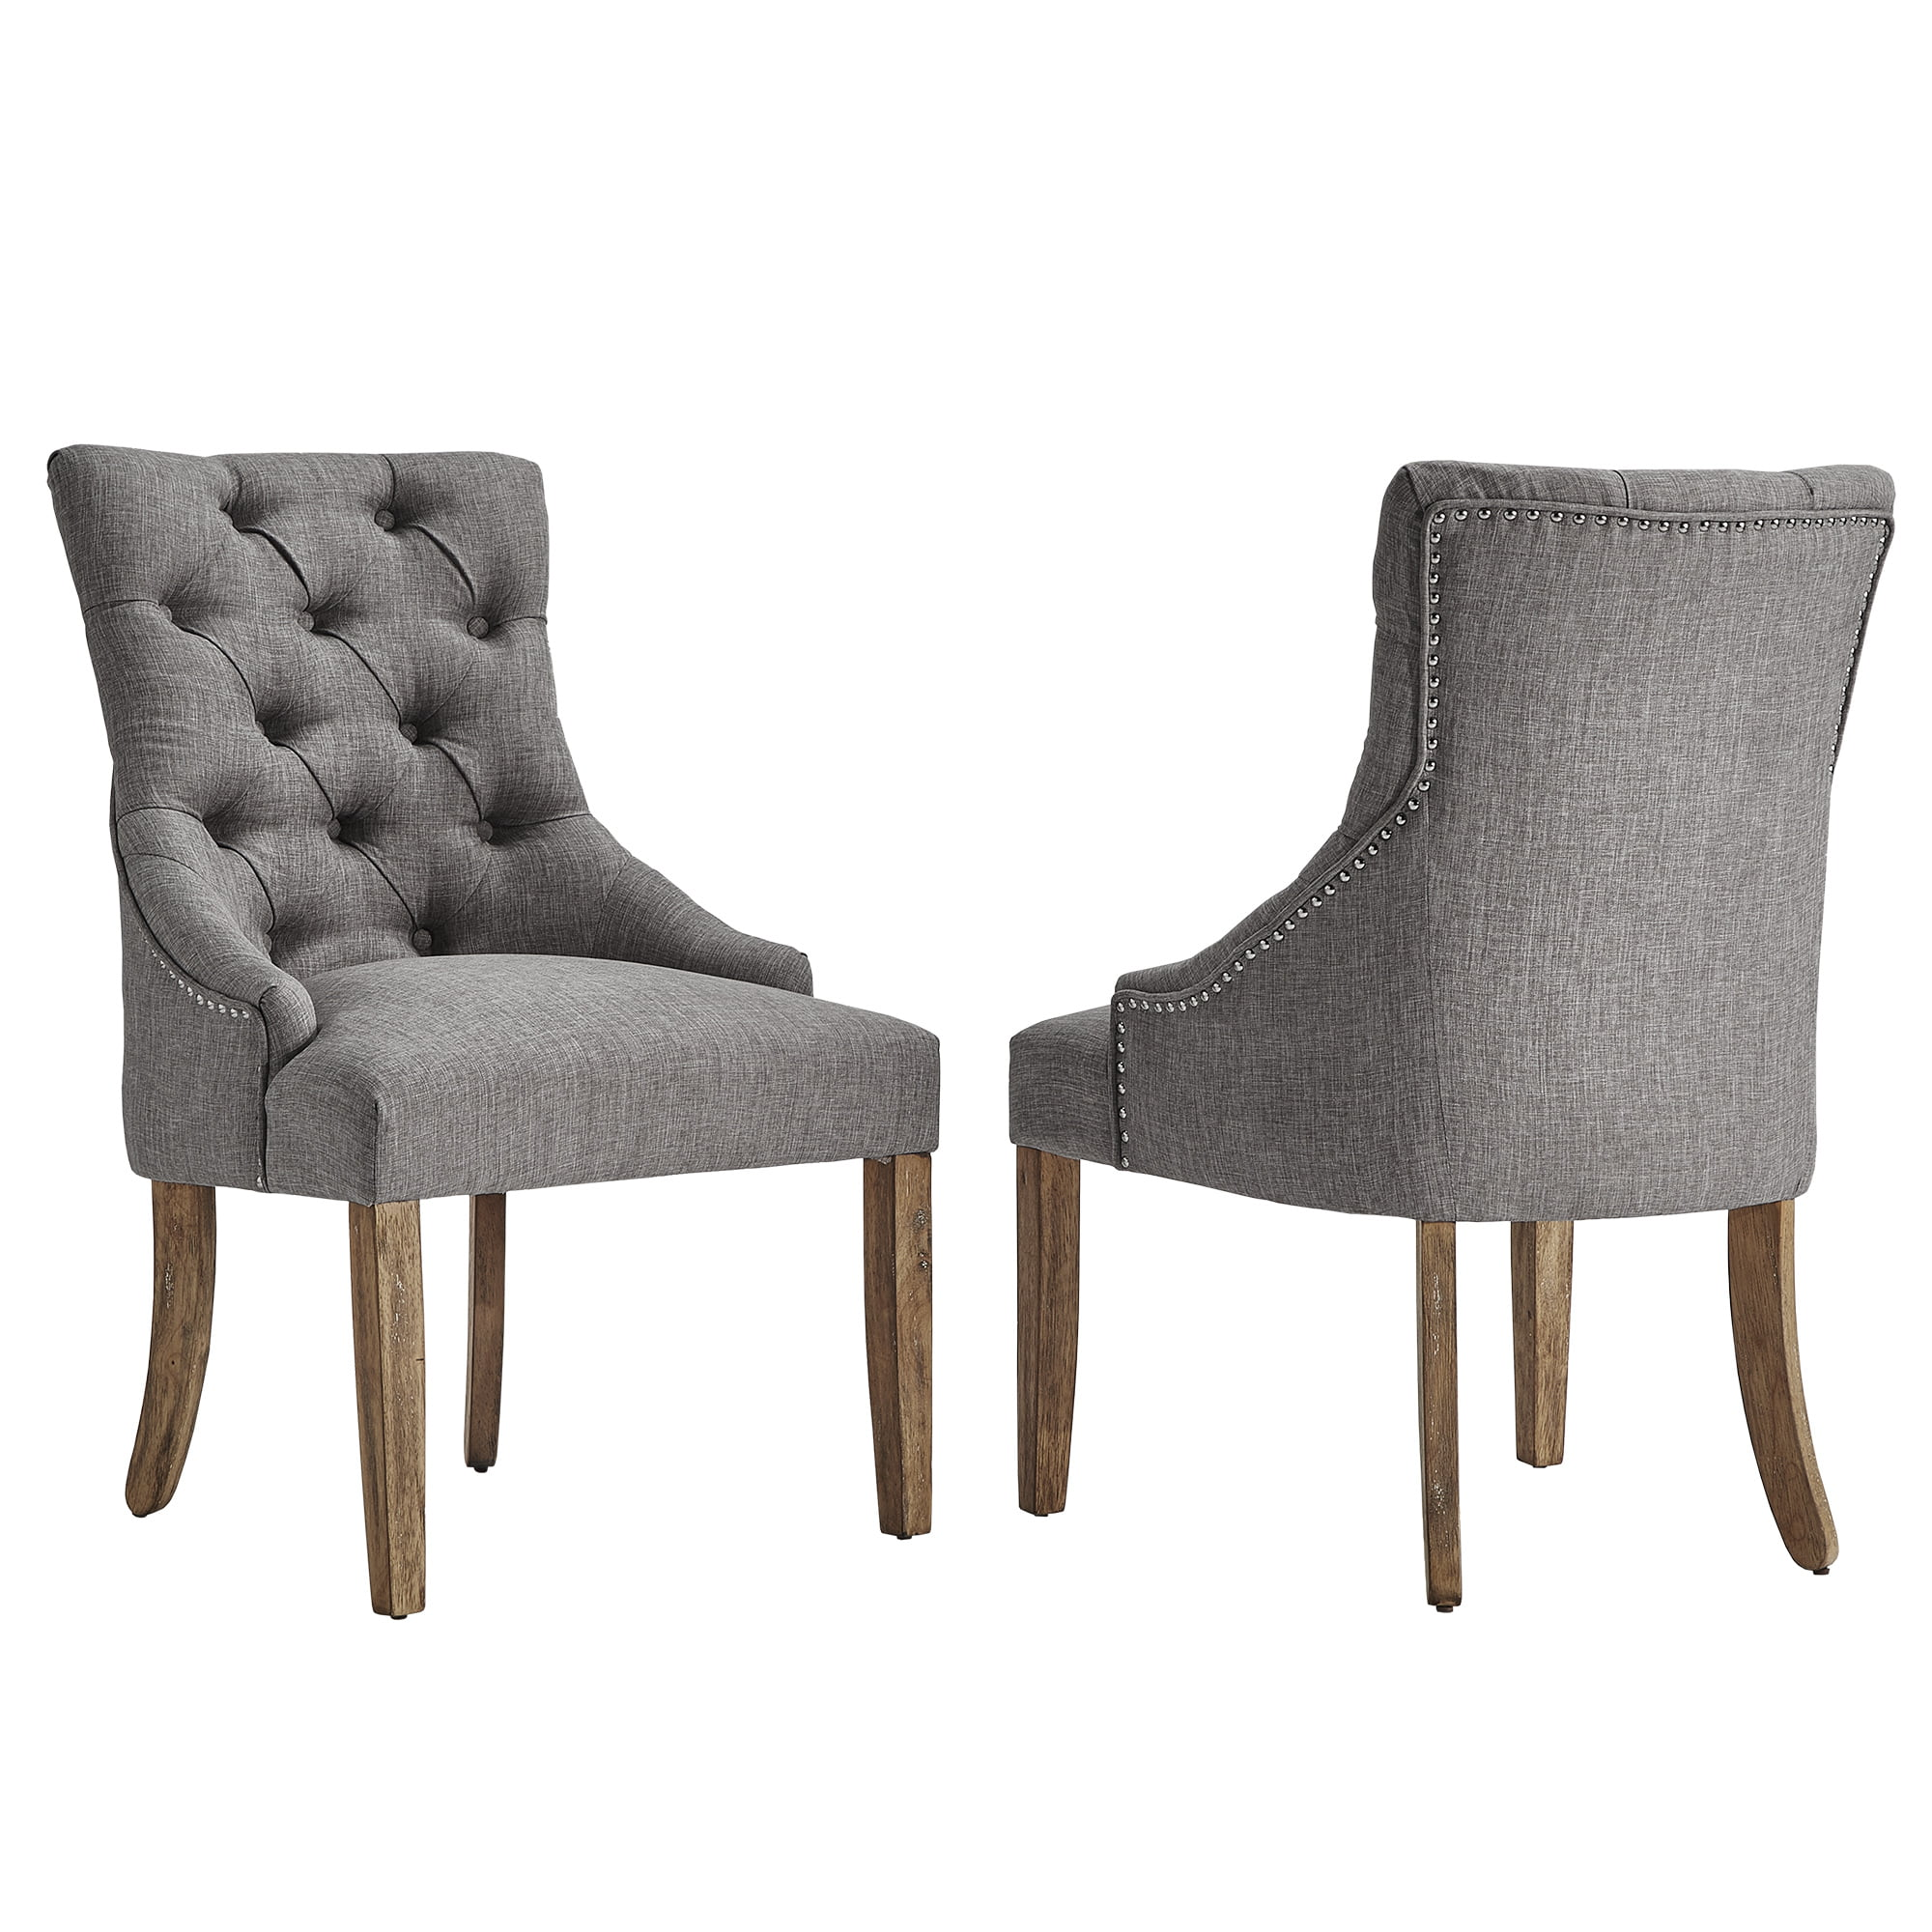 Chelsea Lane Curved Back Linen Tufted Dining Chair Set Of 2 Multiple Colors